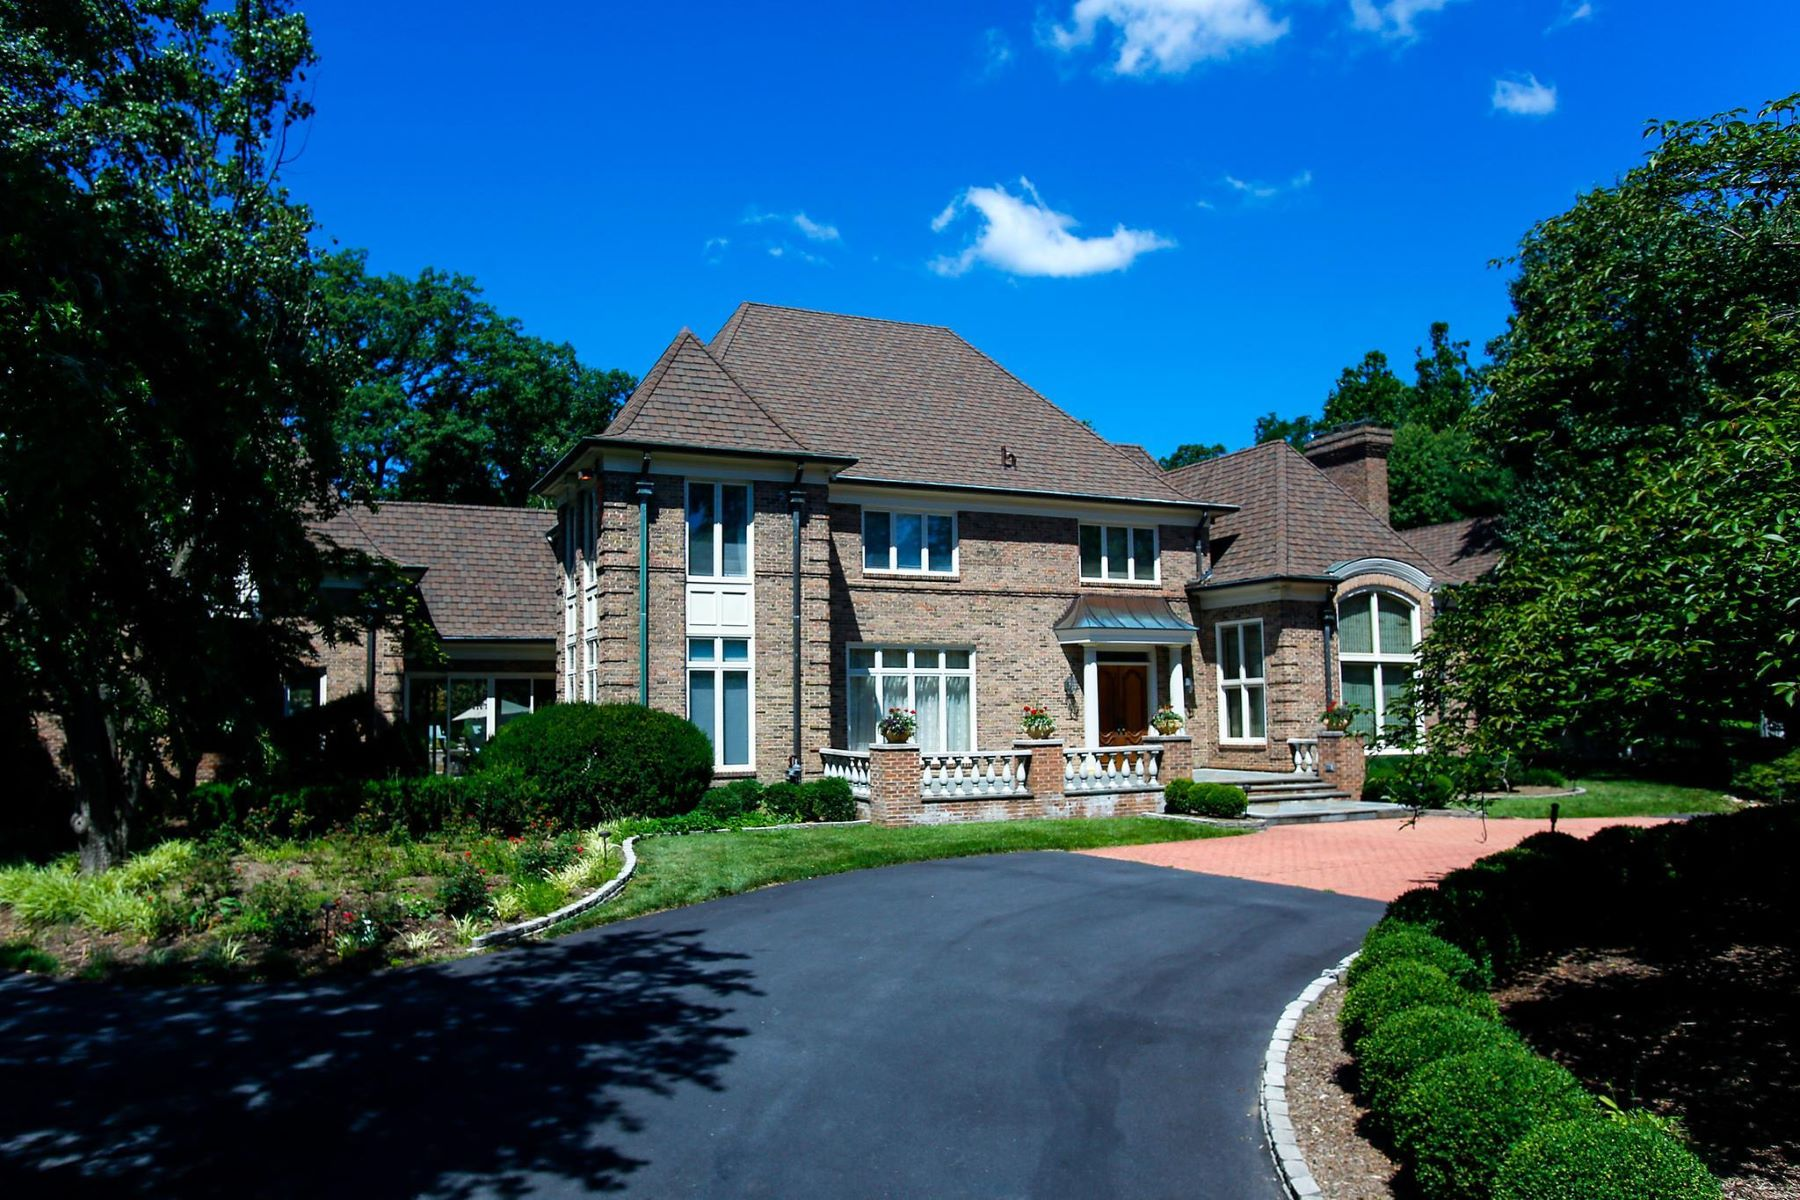 Other Residential for Rent at 10608 Stapleford Hall Dr 10608 Stapleford Hall Dr Potomac, Maryland 20854 United States